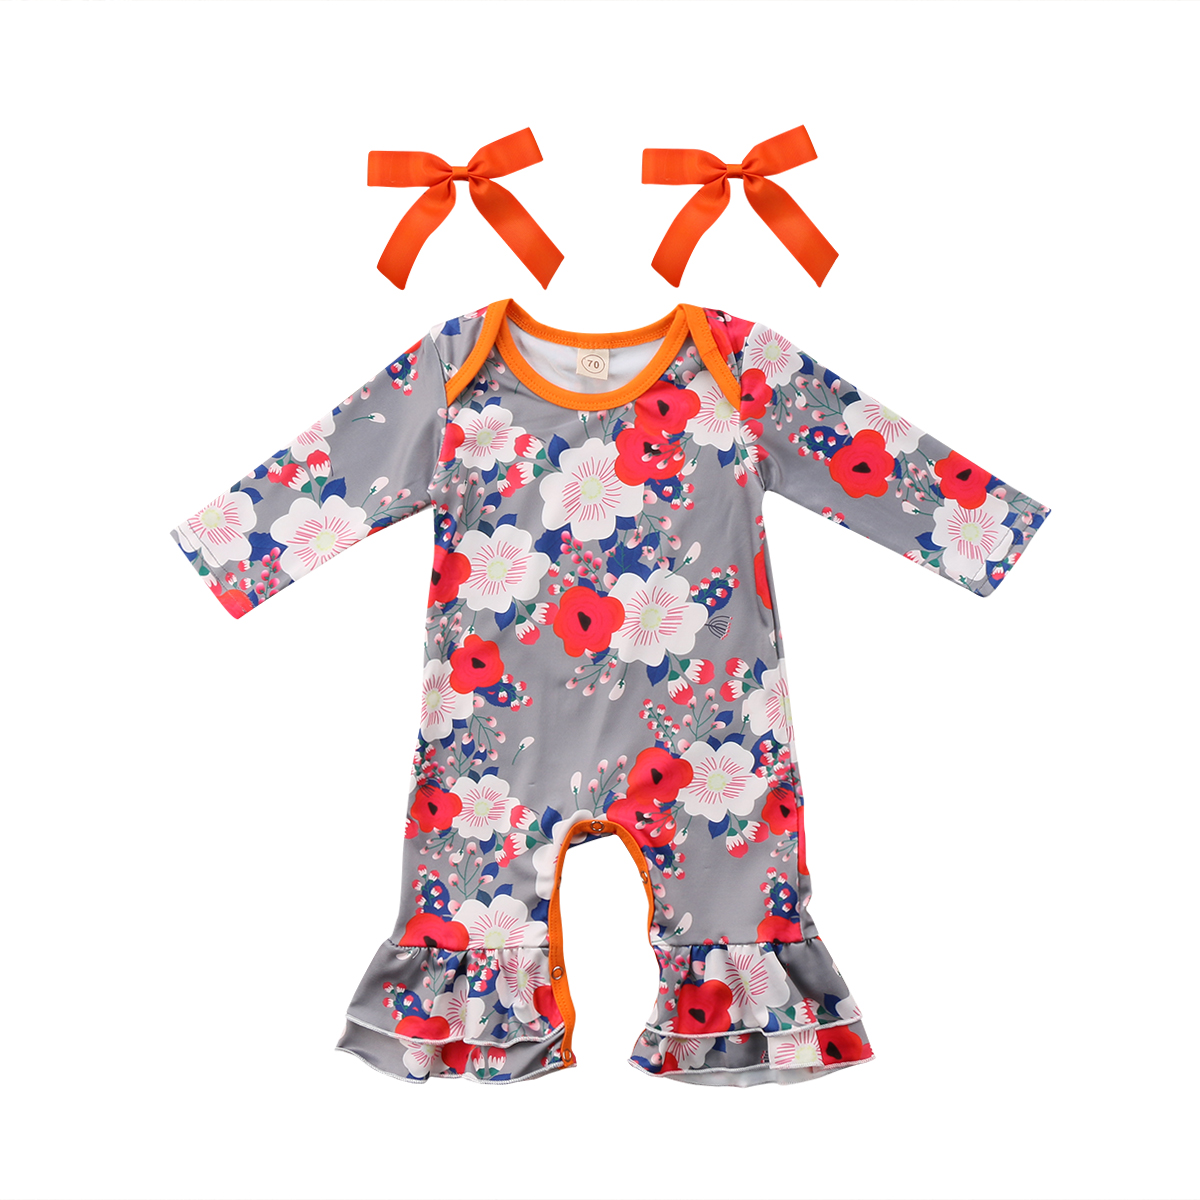 Fashion Floral Newborn Infant Baby Girl Romper O Neck Long Sleeve Flare Jumpsuit Playsuit Clothes Outfits 0-24M